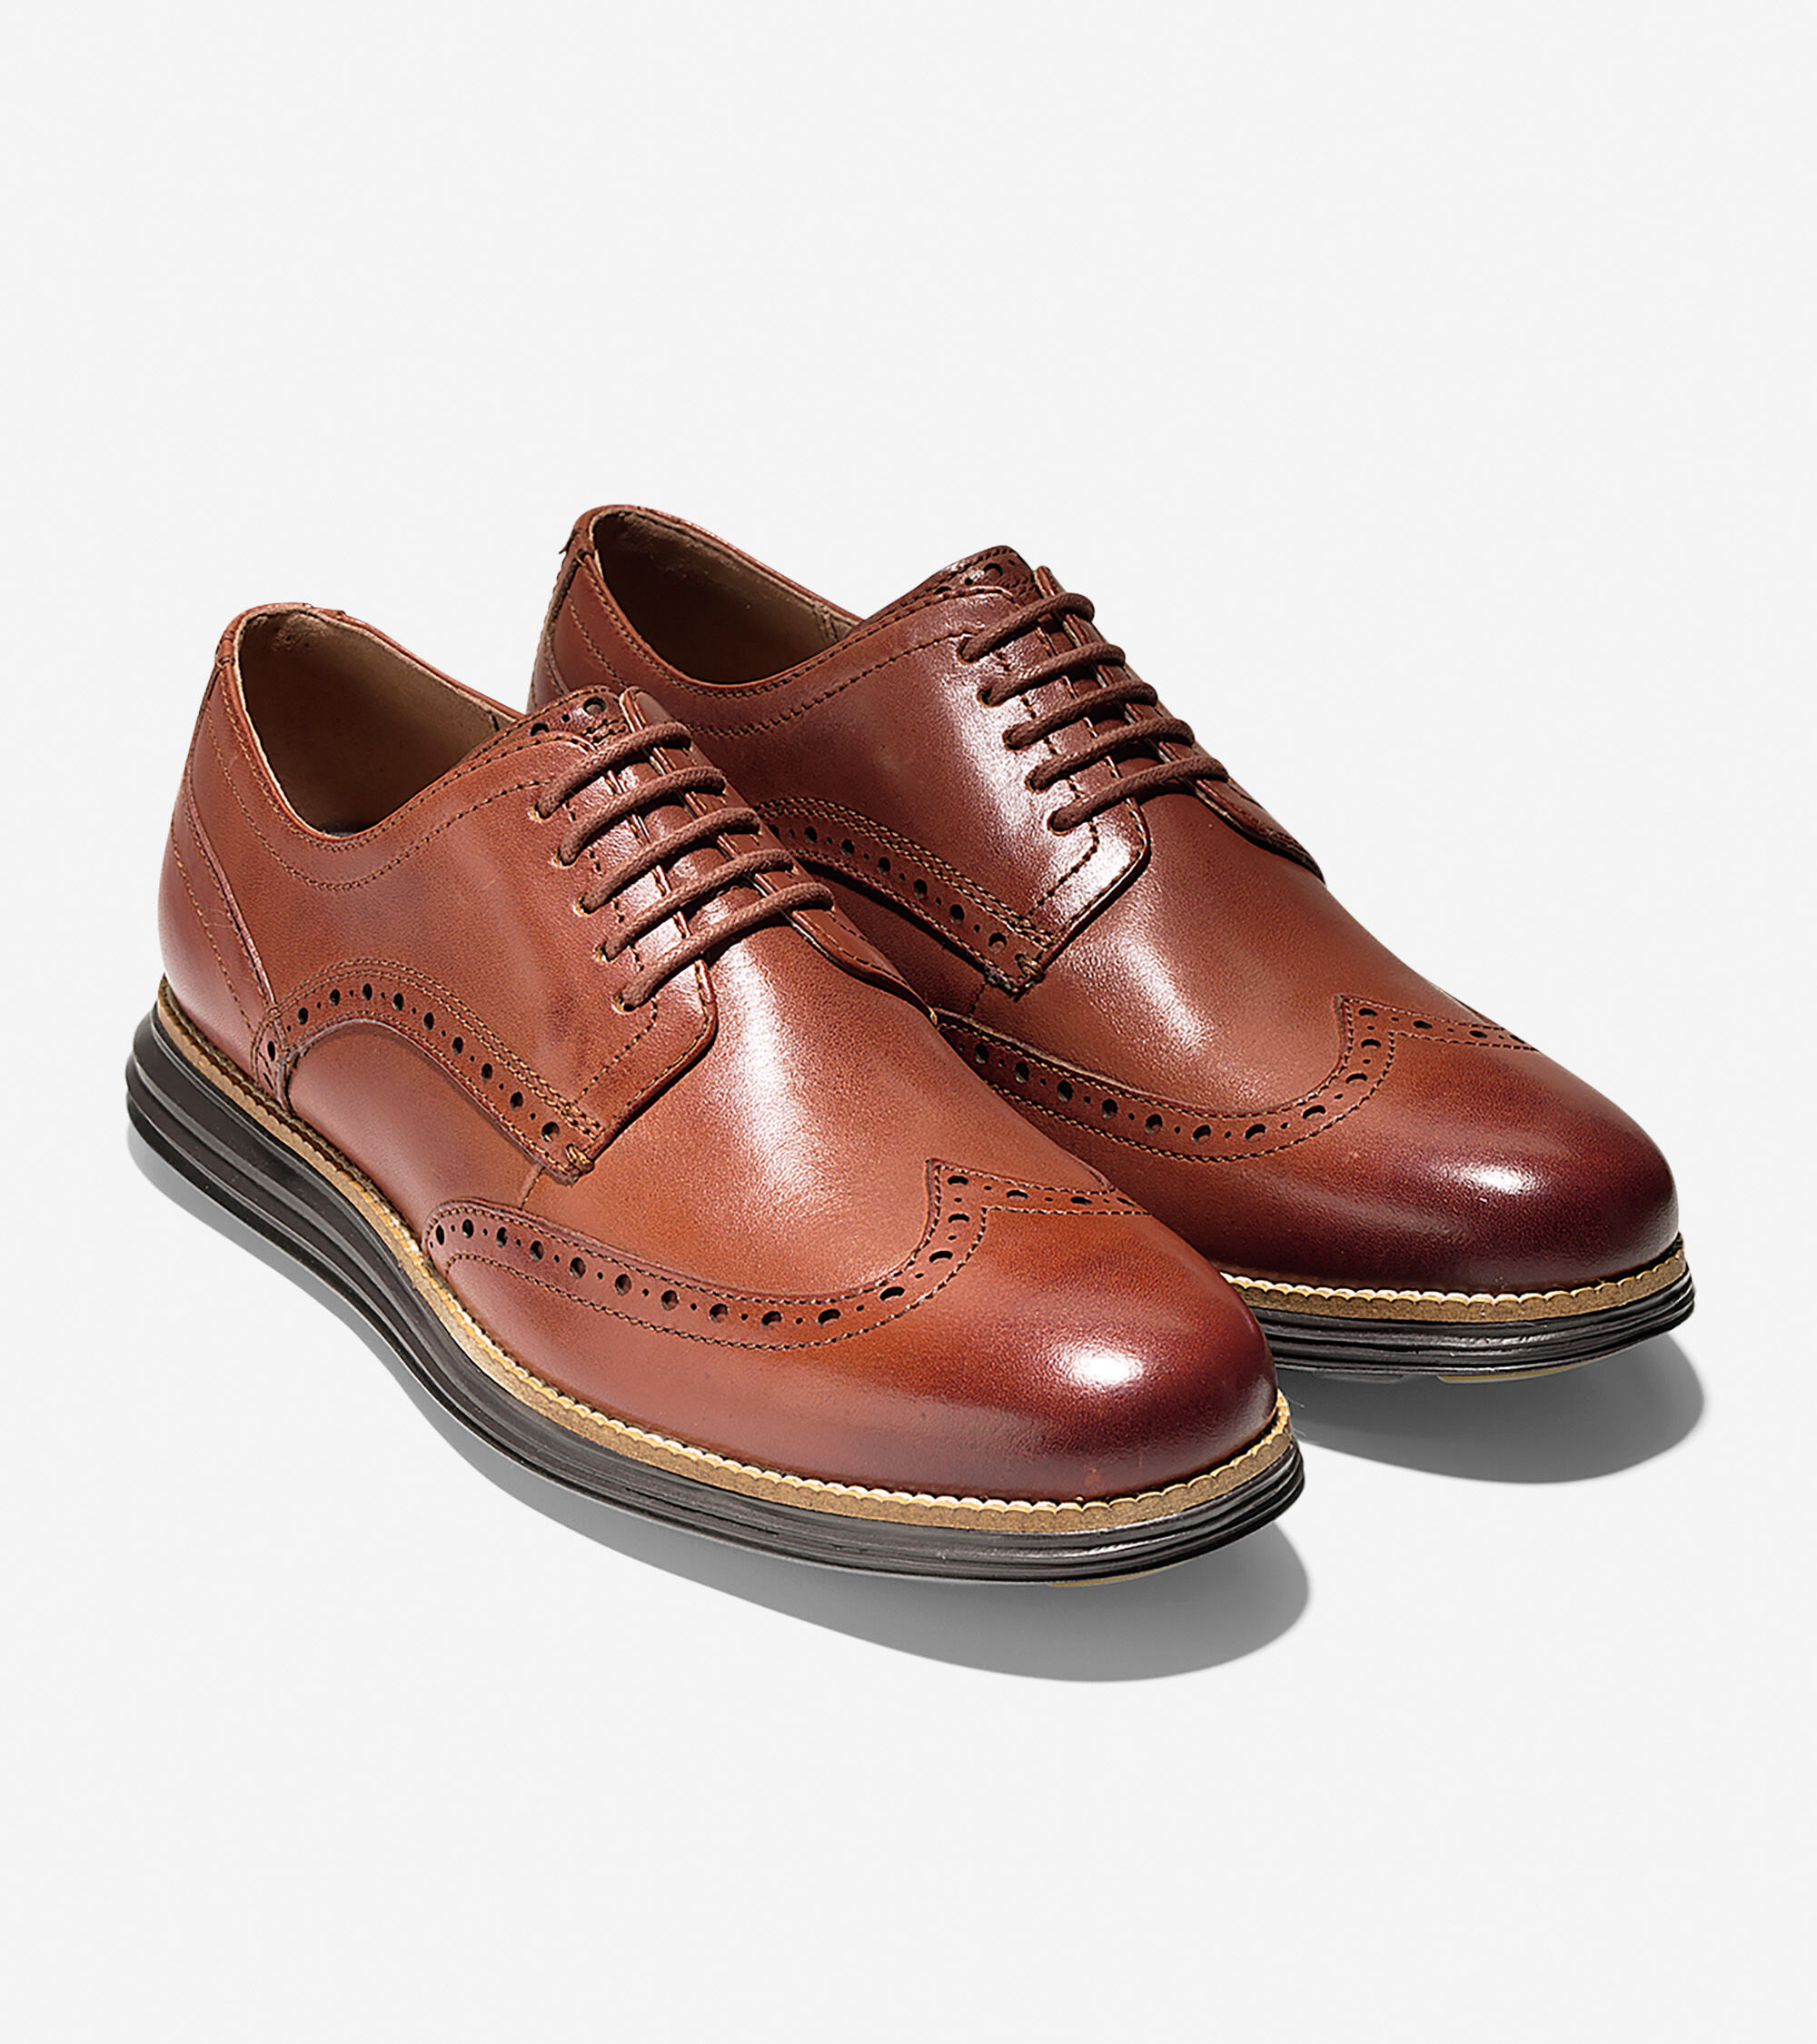 Cole Haan Original Grand Java Wing Oxfords